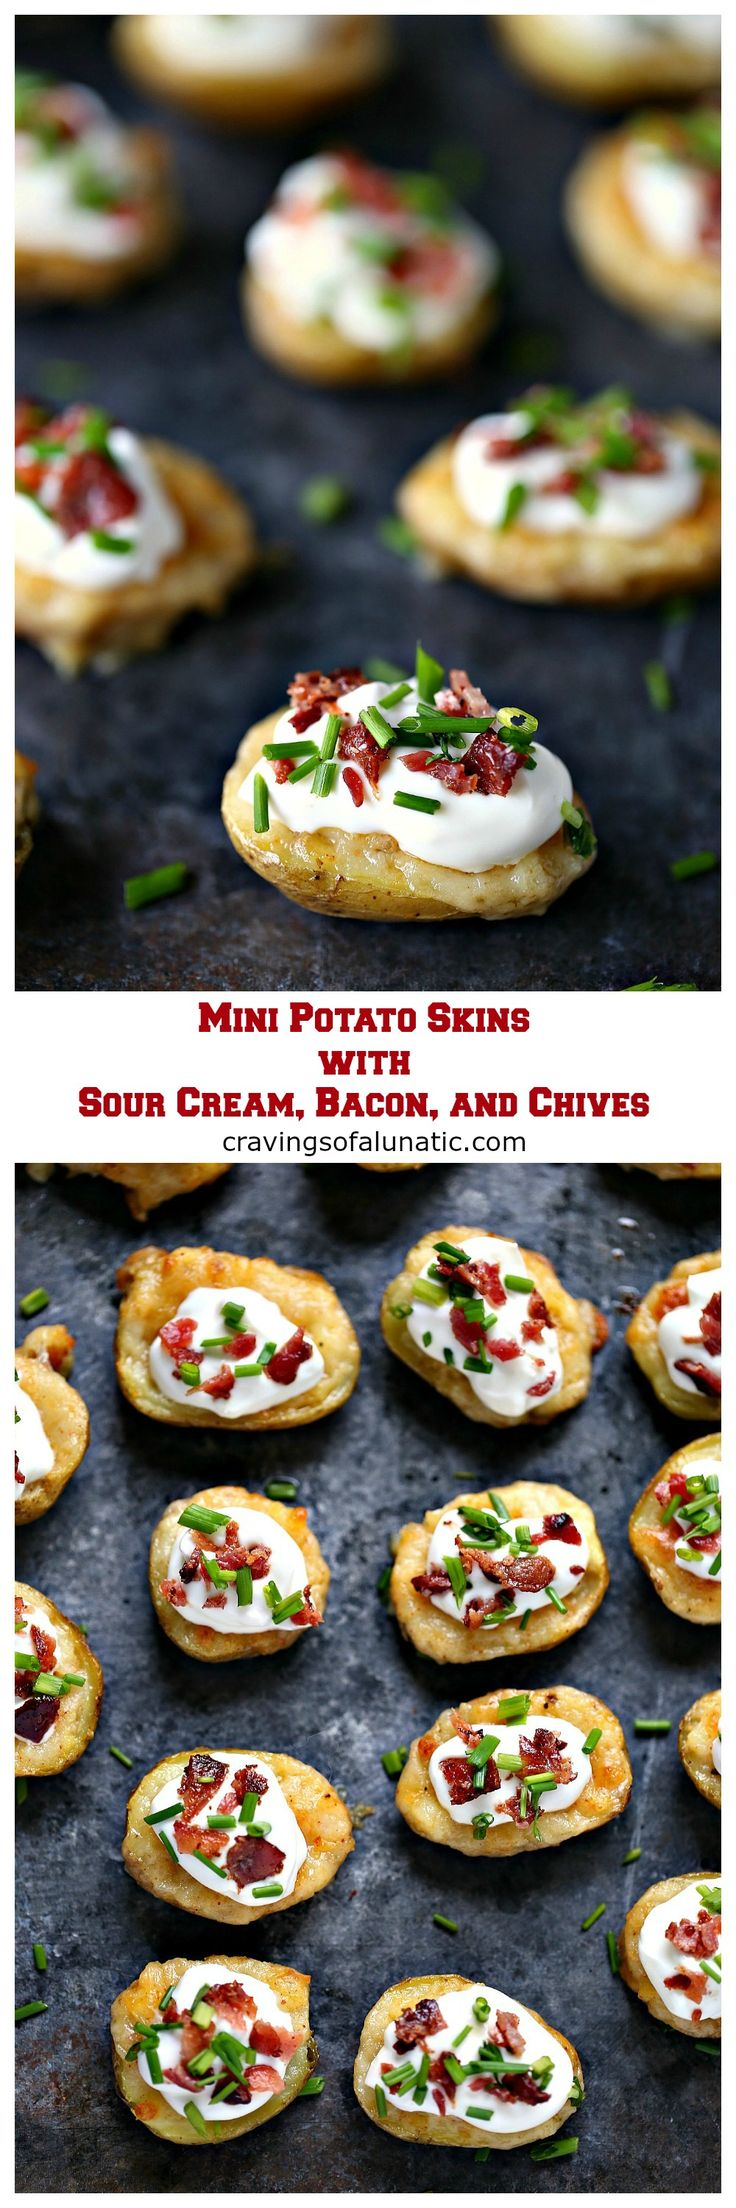 Mini Potato Skins with Sour Cream, Bacon, and Chives from cravingsofalunatic.com- This recipe for Mini Potato Skins with Sour Cream, Bacon, and Chives is simple and delicious. These little bites are perfect for entertaining, especially during game season. #sponsored #BornOnTheFarm